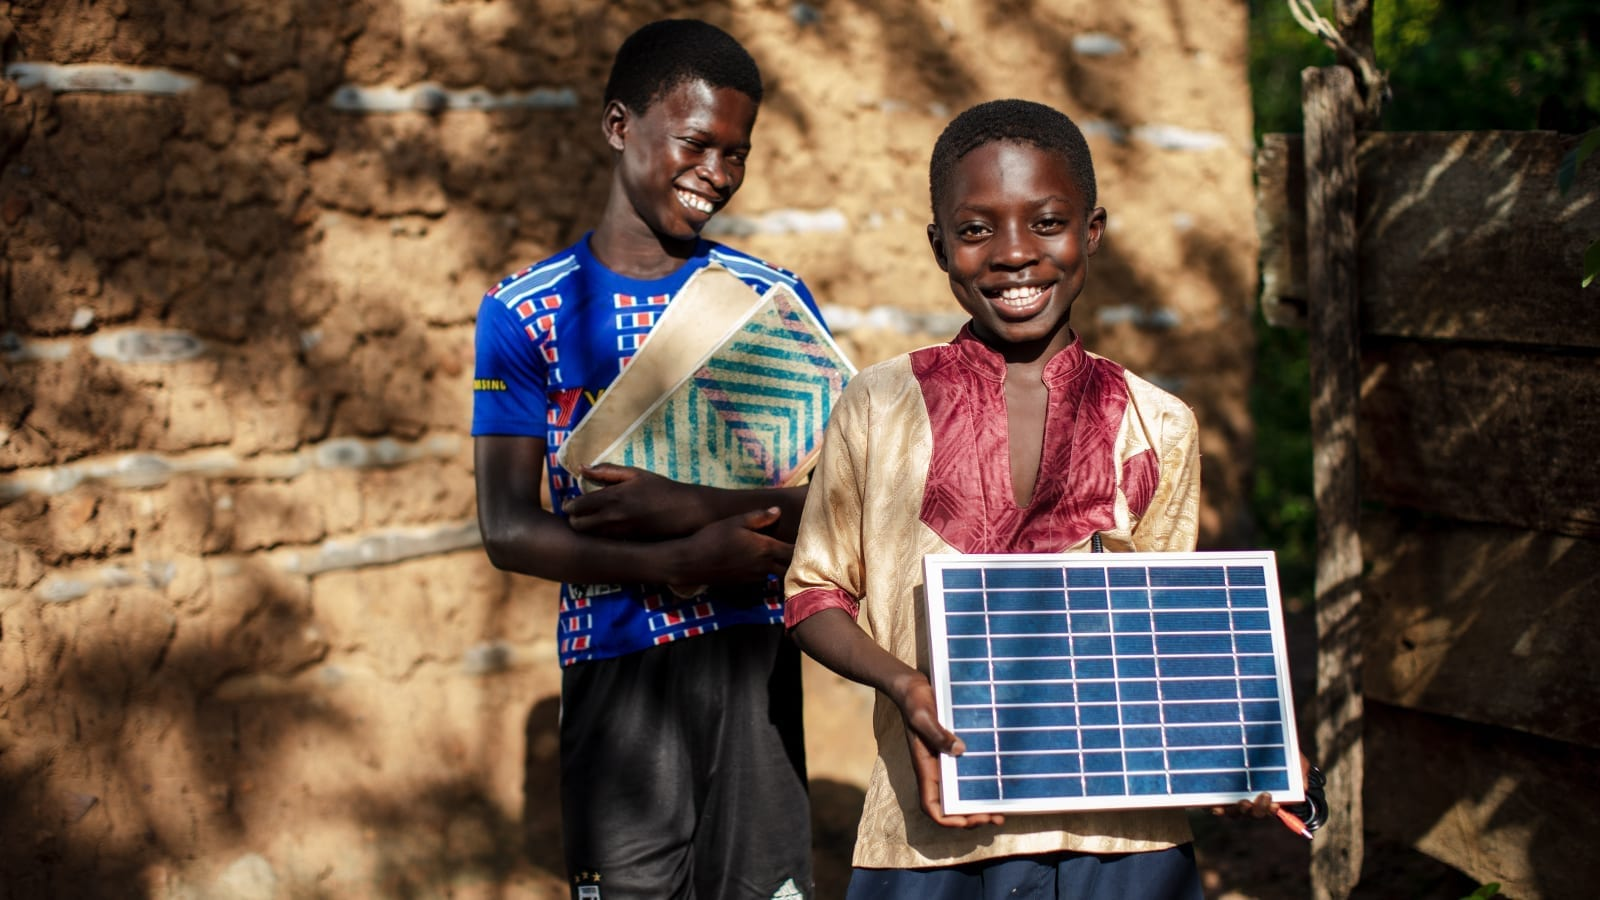 West African solar company, PEG Africa raises $25 million funding